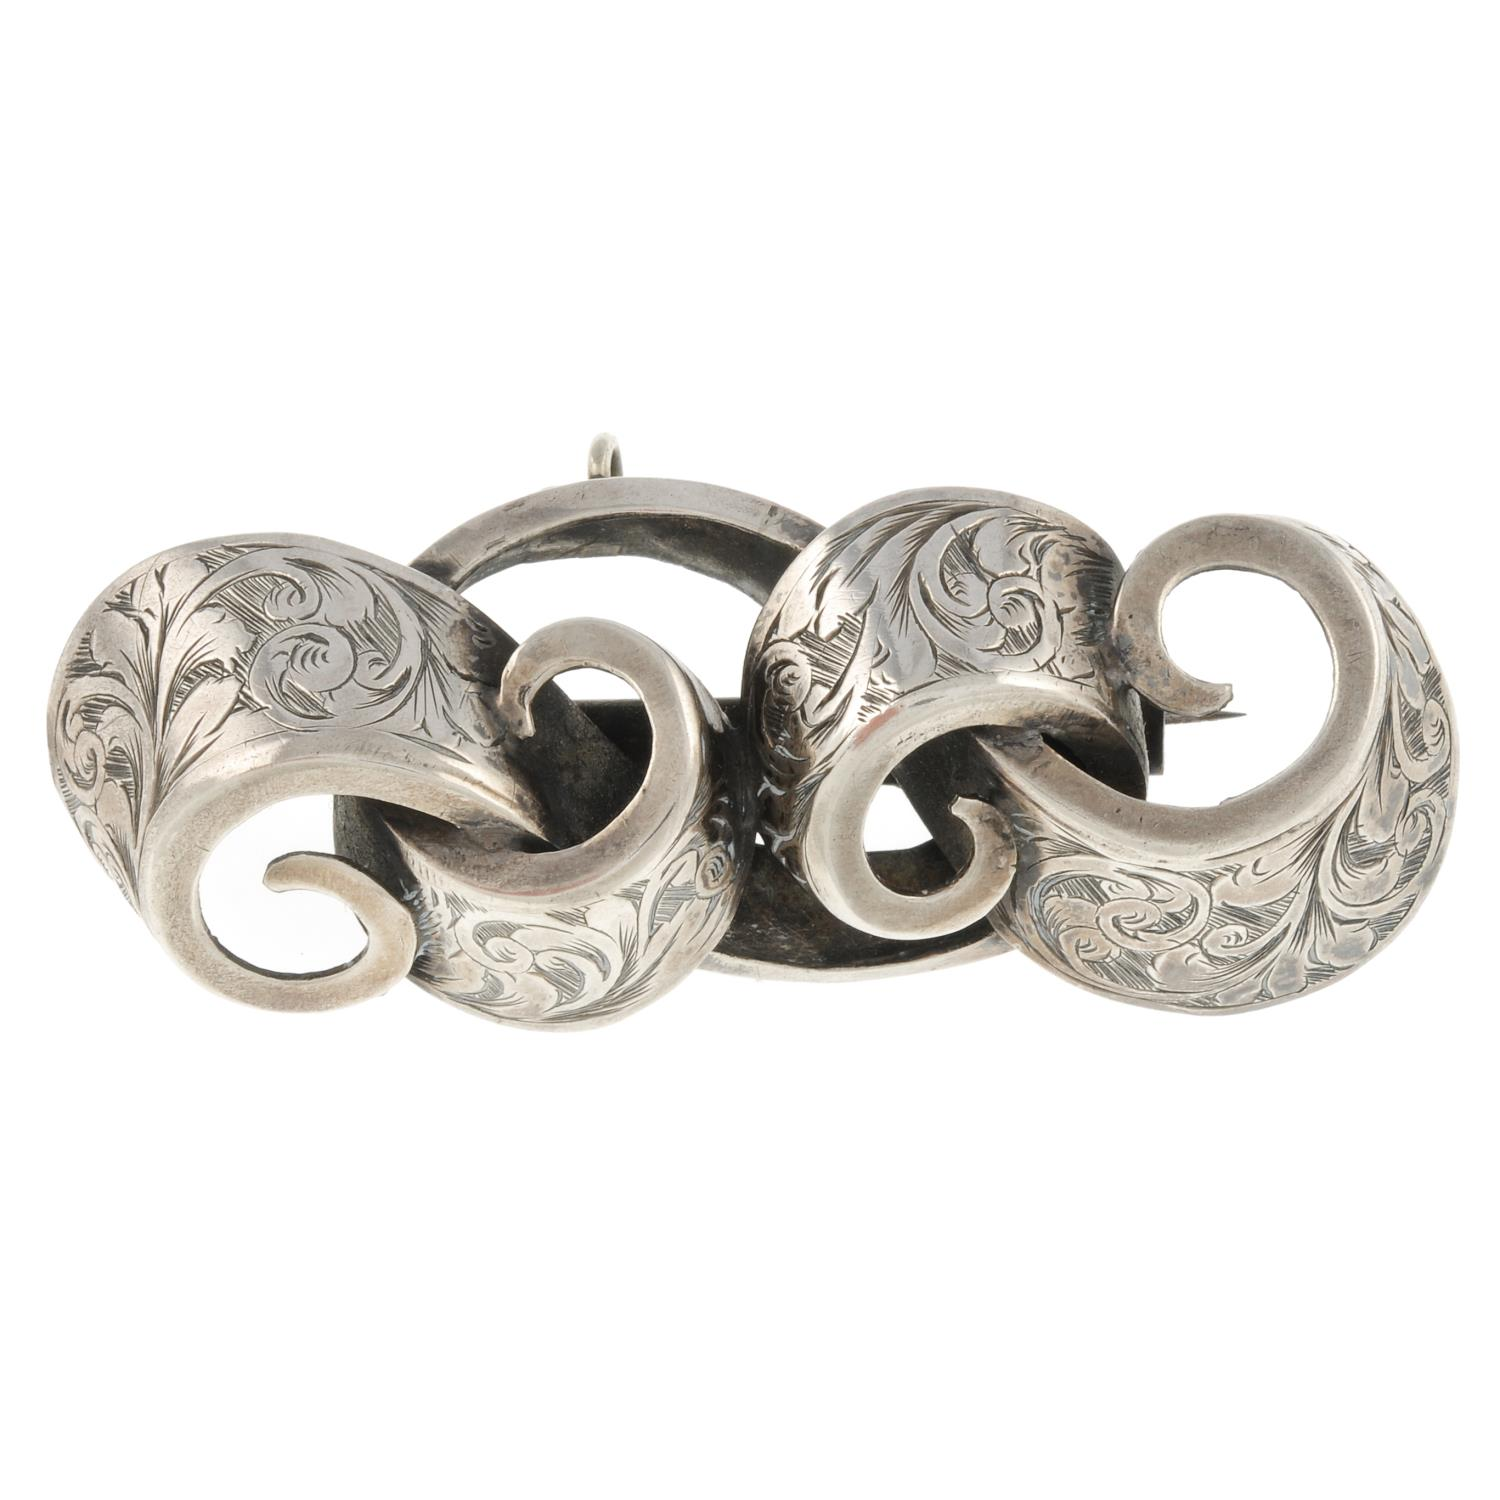 A Victorian engraved brooch, by Hilliard & Thompson.With maker's marks.Length 7cms.